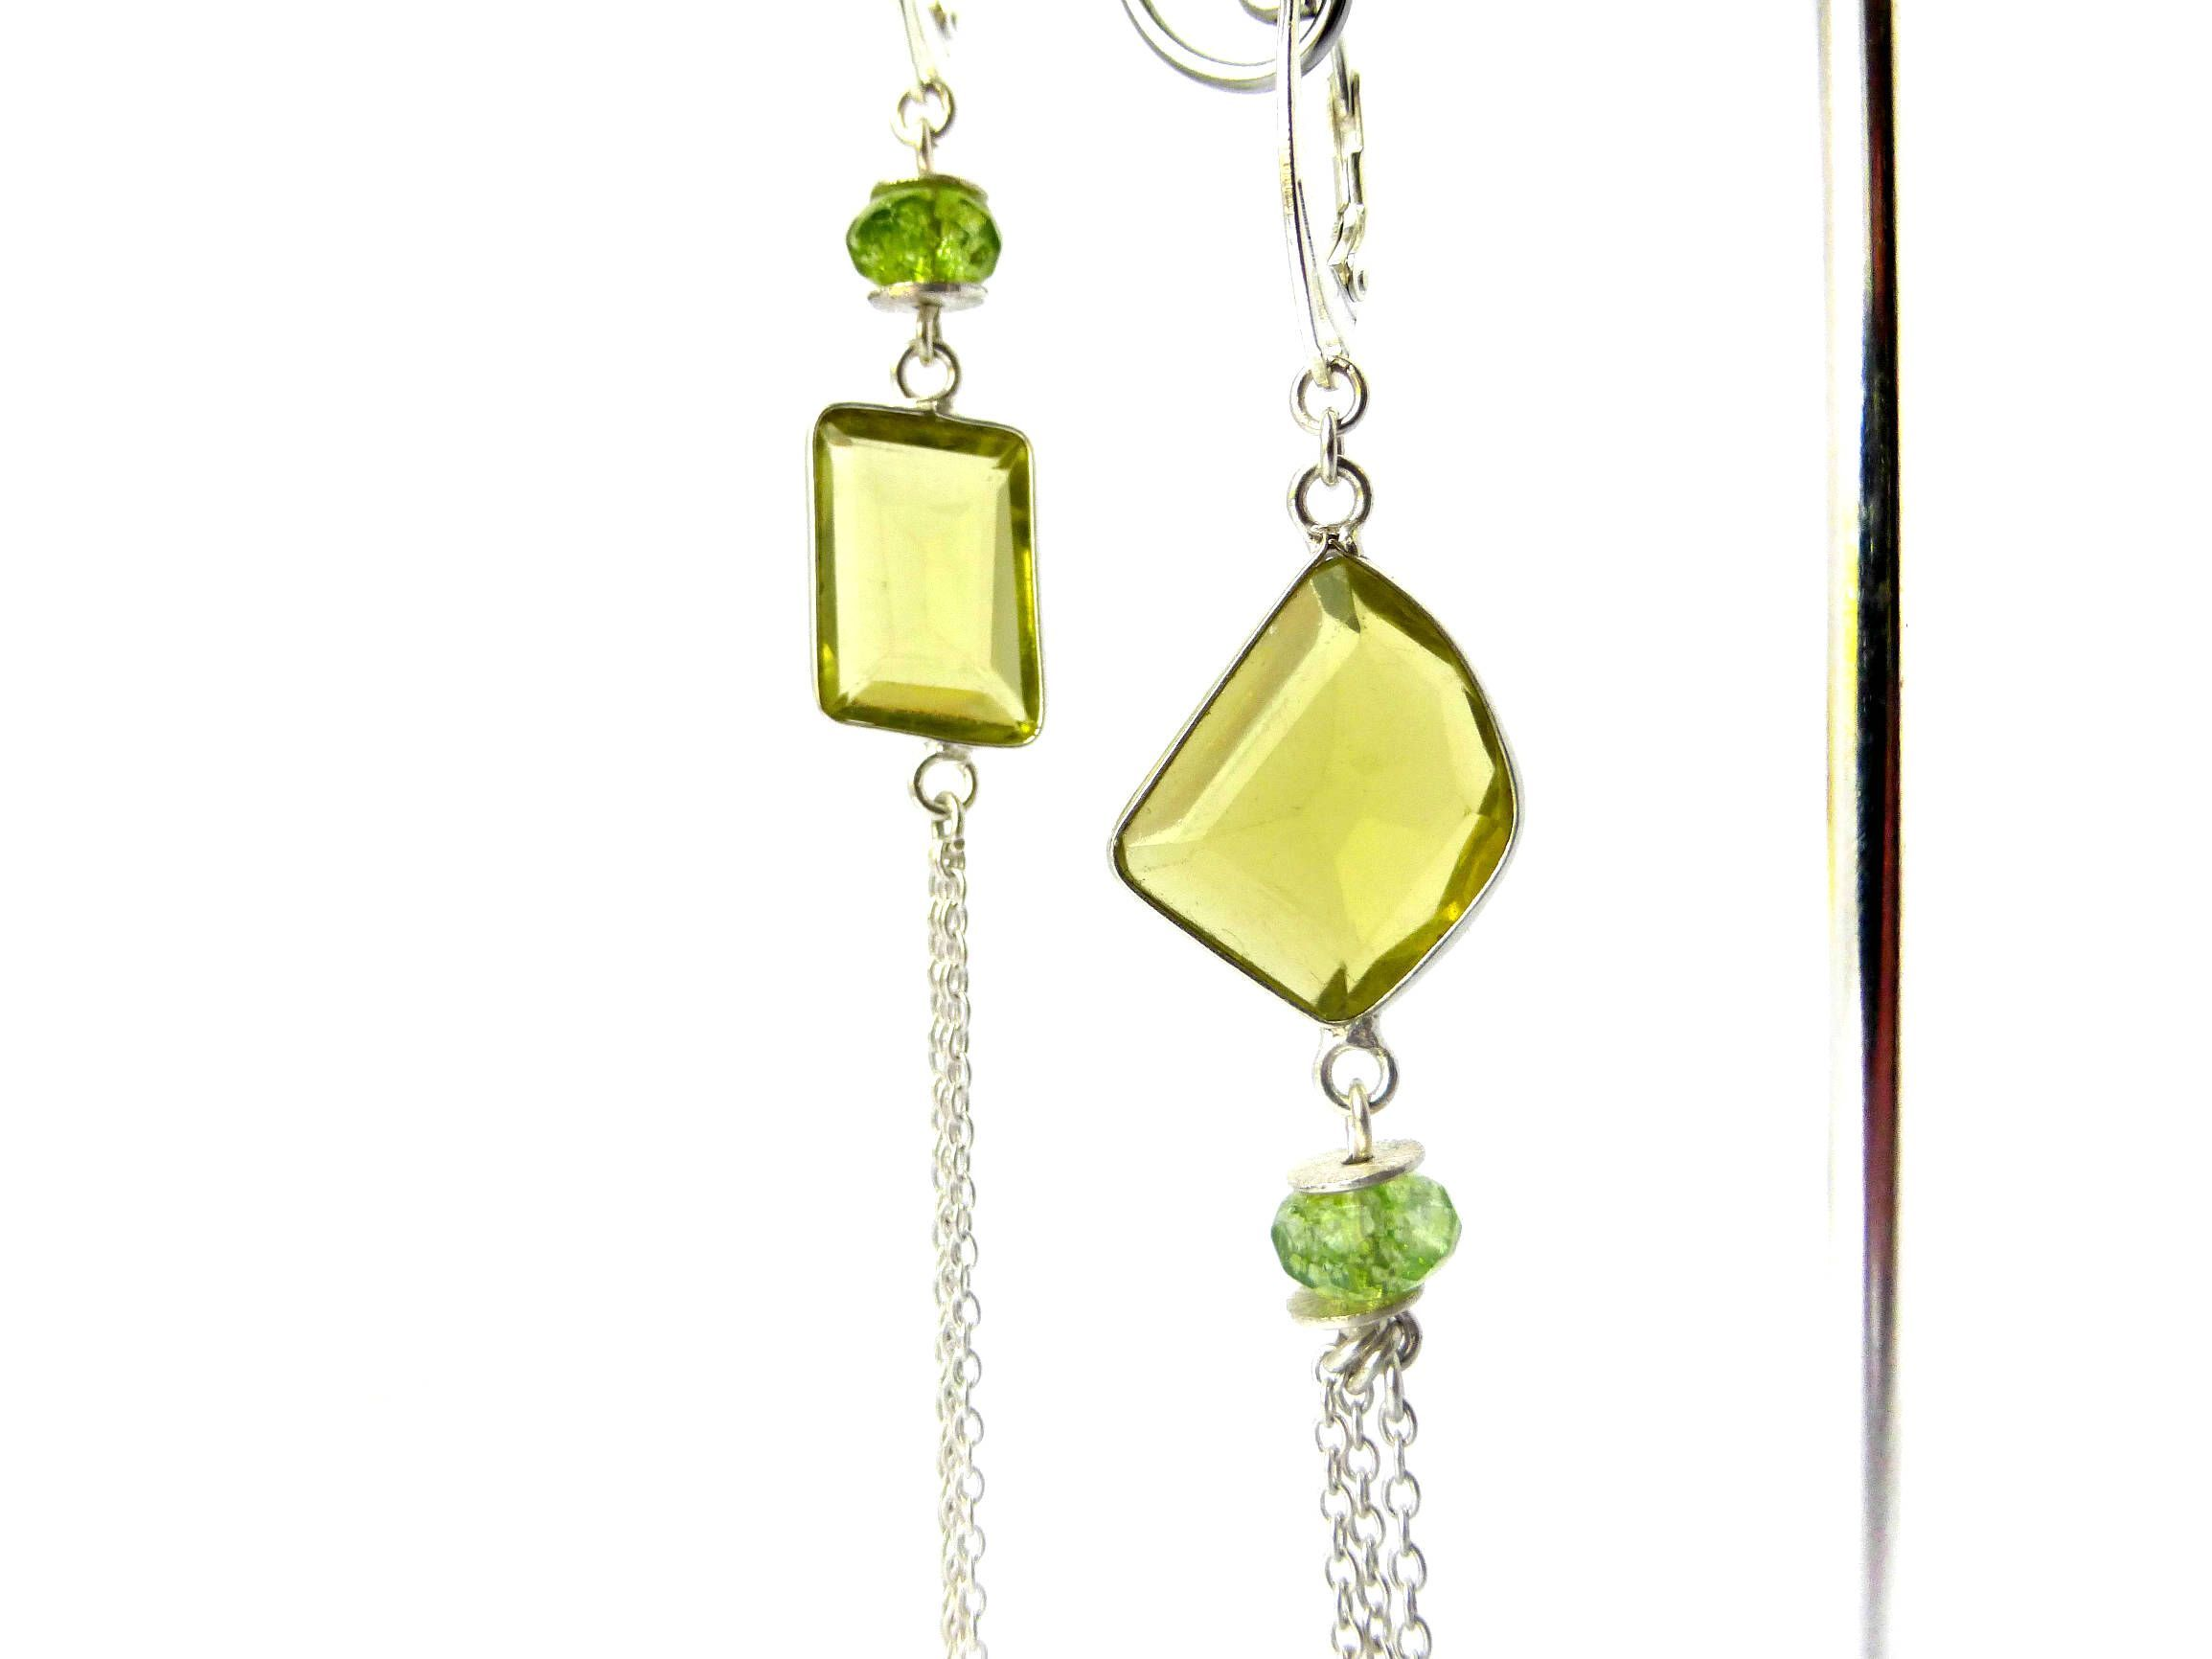 square india about middleton news glamour earrings mismatched guides kate tips tour accessorize